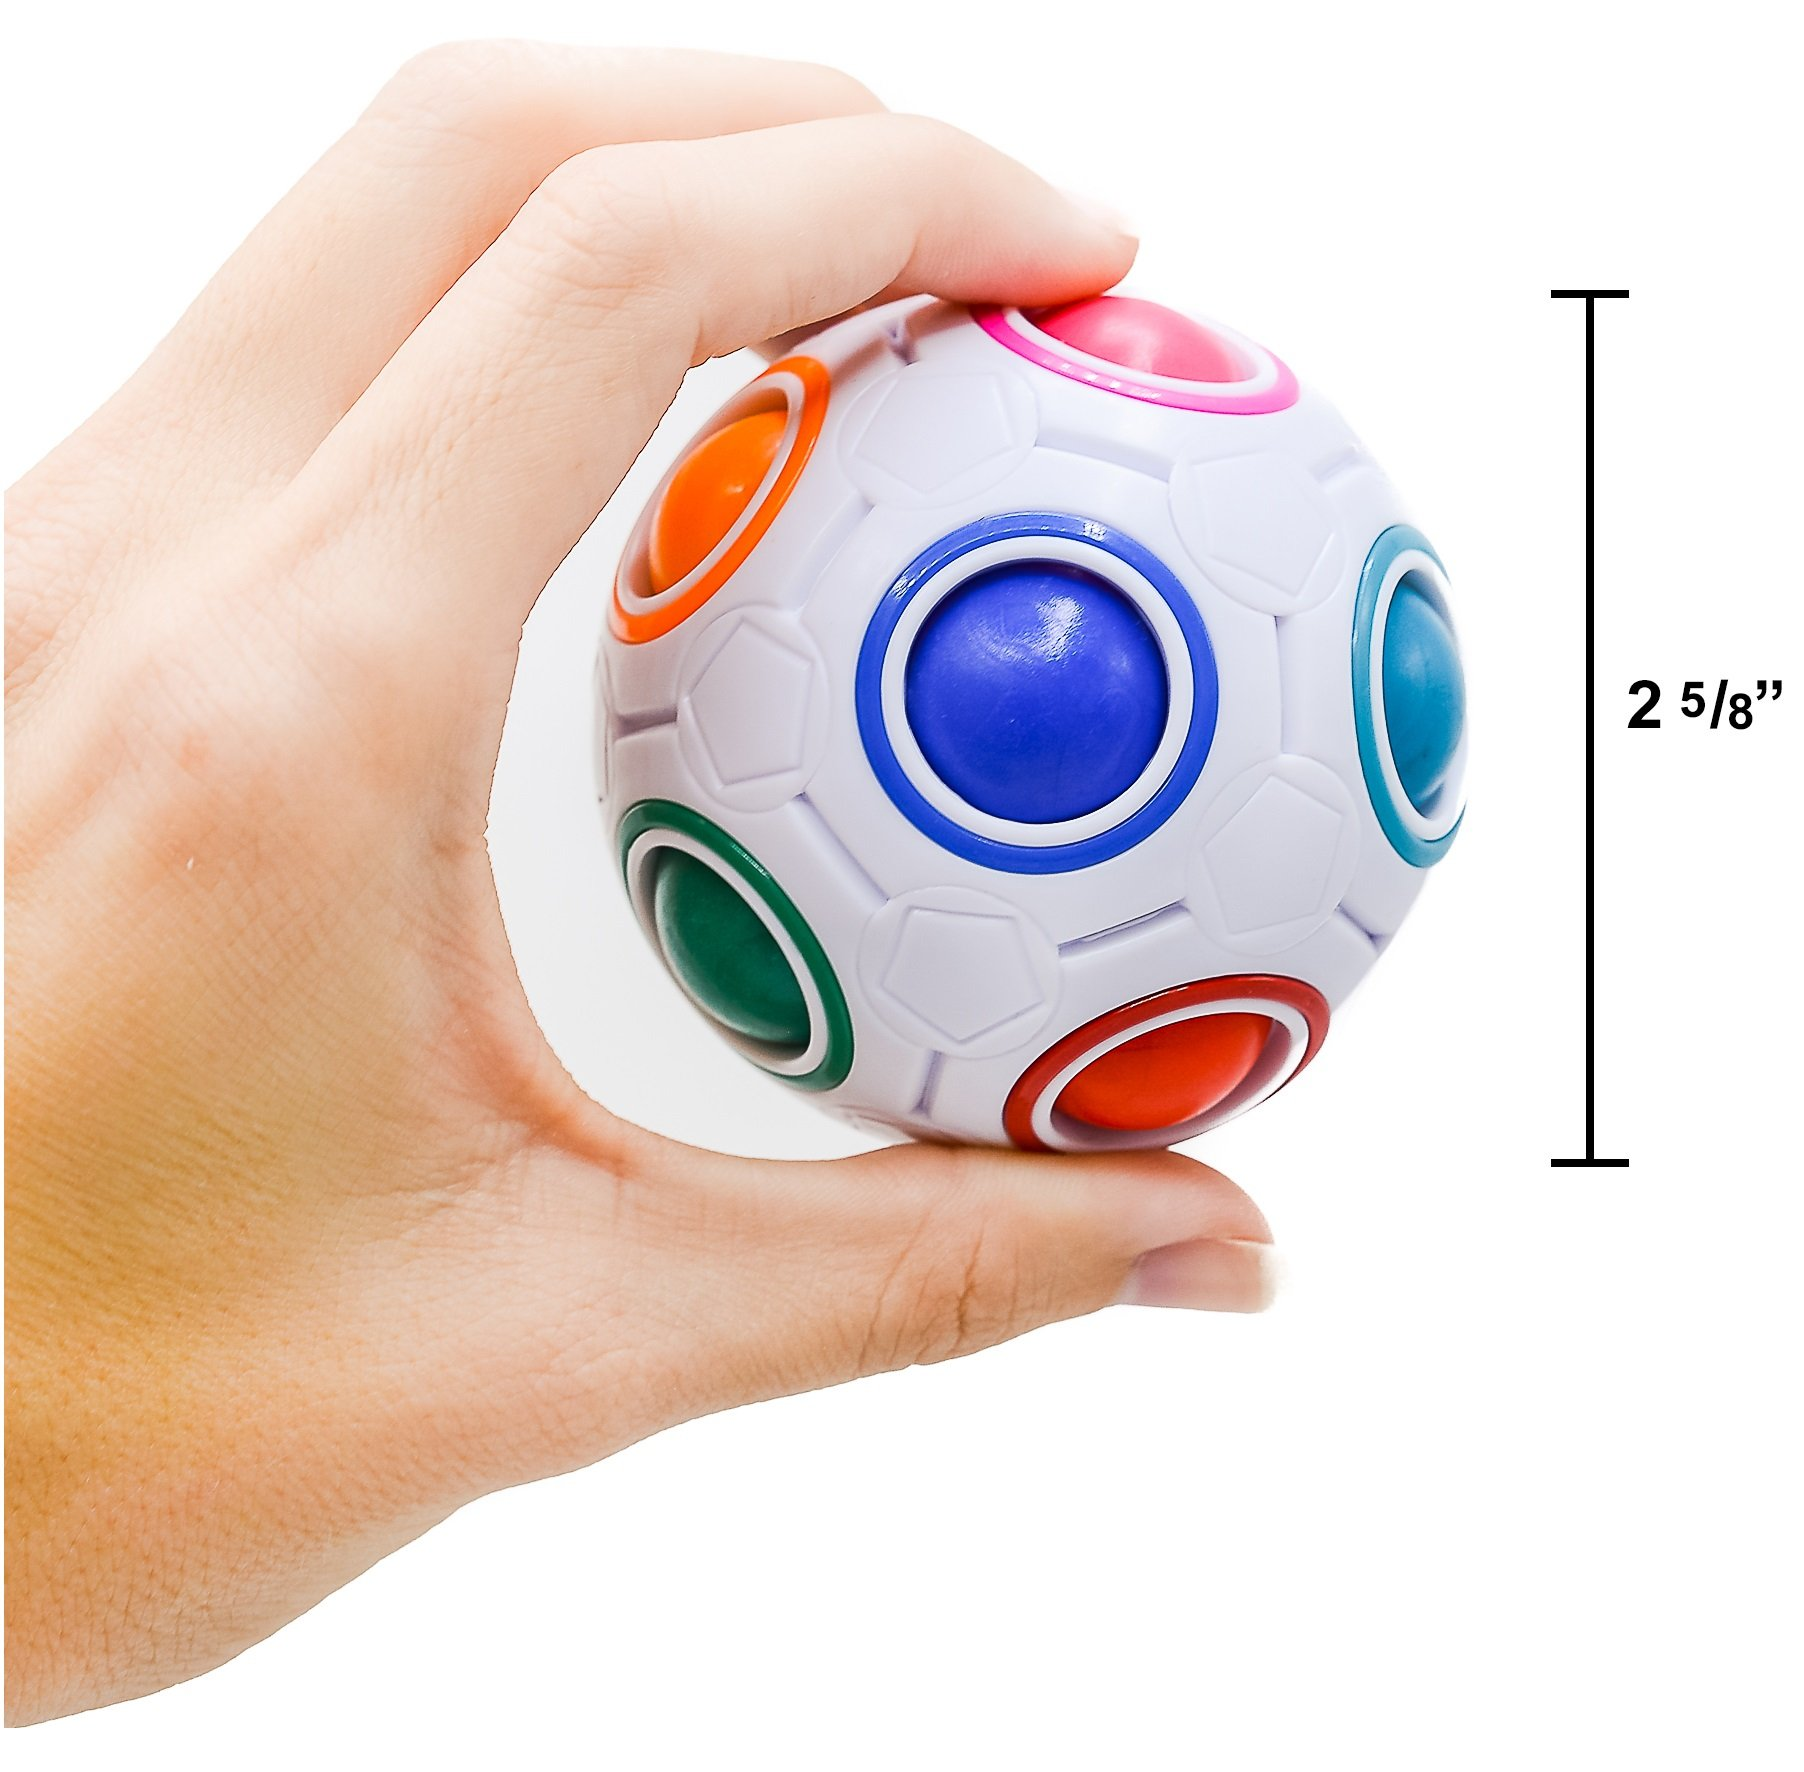 Toyzabo Challenging Puzzle Speed Cube Ball, Fun Fidget Toy Brain Teaser With 11 Rainbow Colors (10 Pack) by Toyzabo (Image #5)